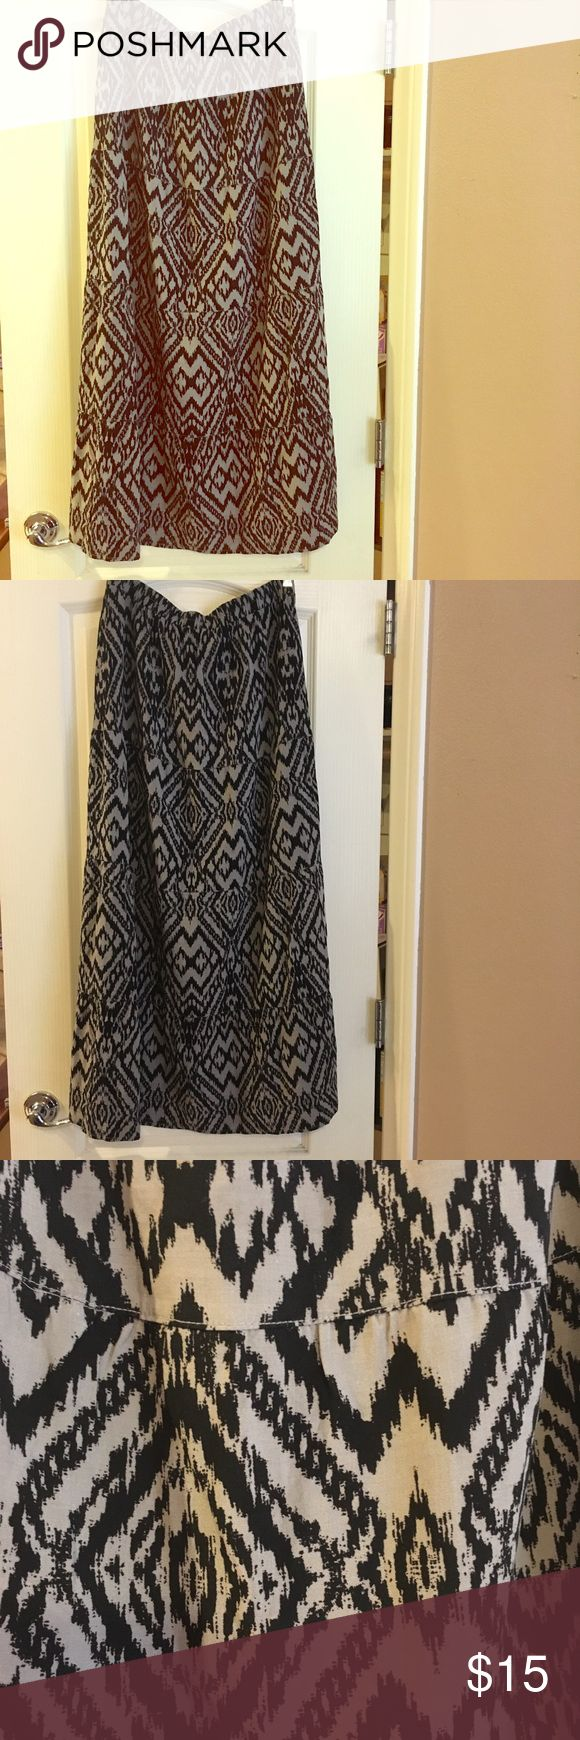 Old Navy maxi skirt Old navy maxi skirt. Perfect condition, light weight. Old Navy Skirts Maxi